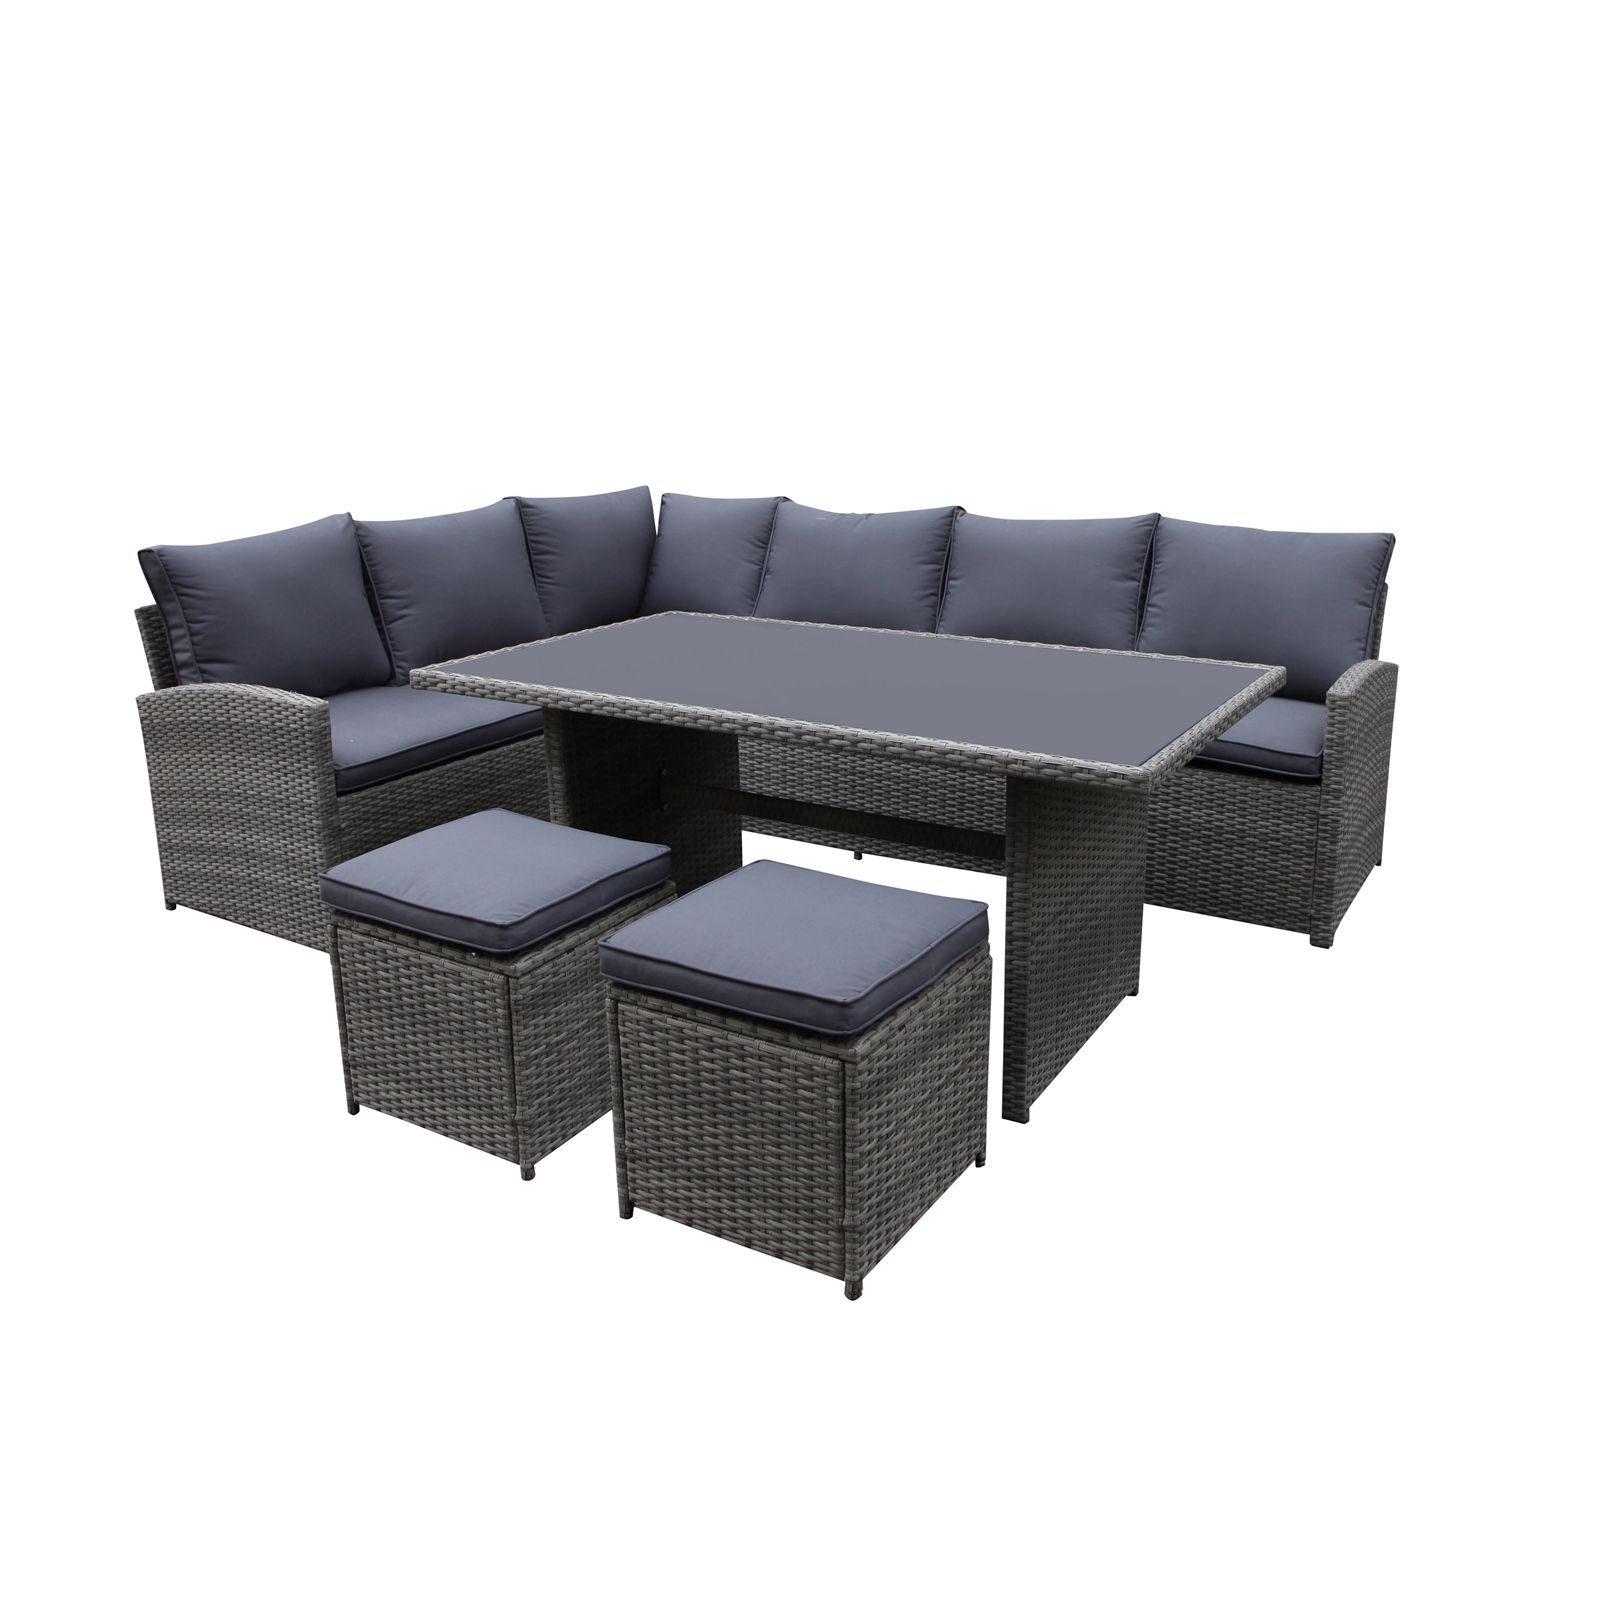 Matara Rattan Corner Sofa Dining Garden Furniture Set In Grey In 2020 Rattan Corner Sofa Corner Sofa Bed With Storage Corner Sofa And Chair